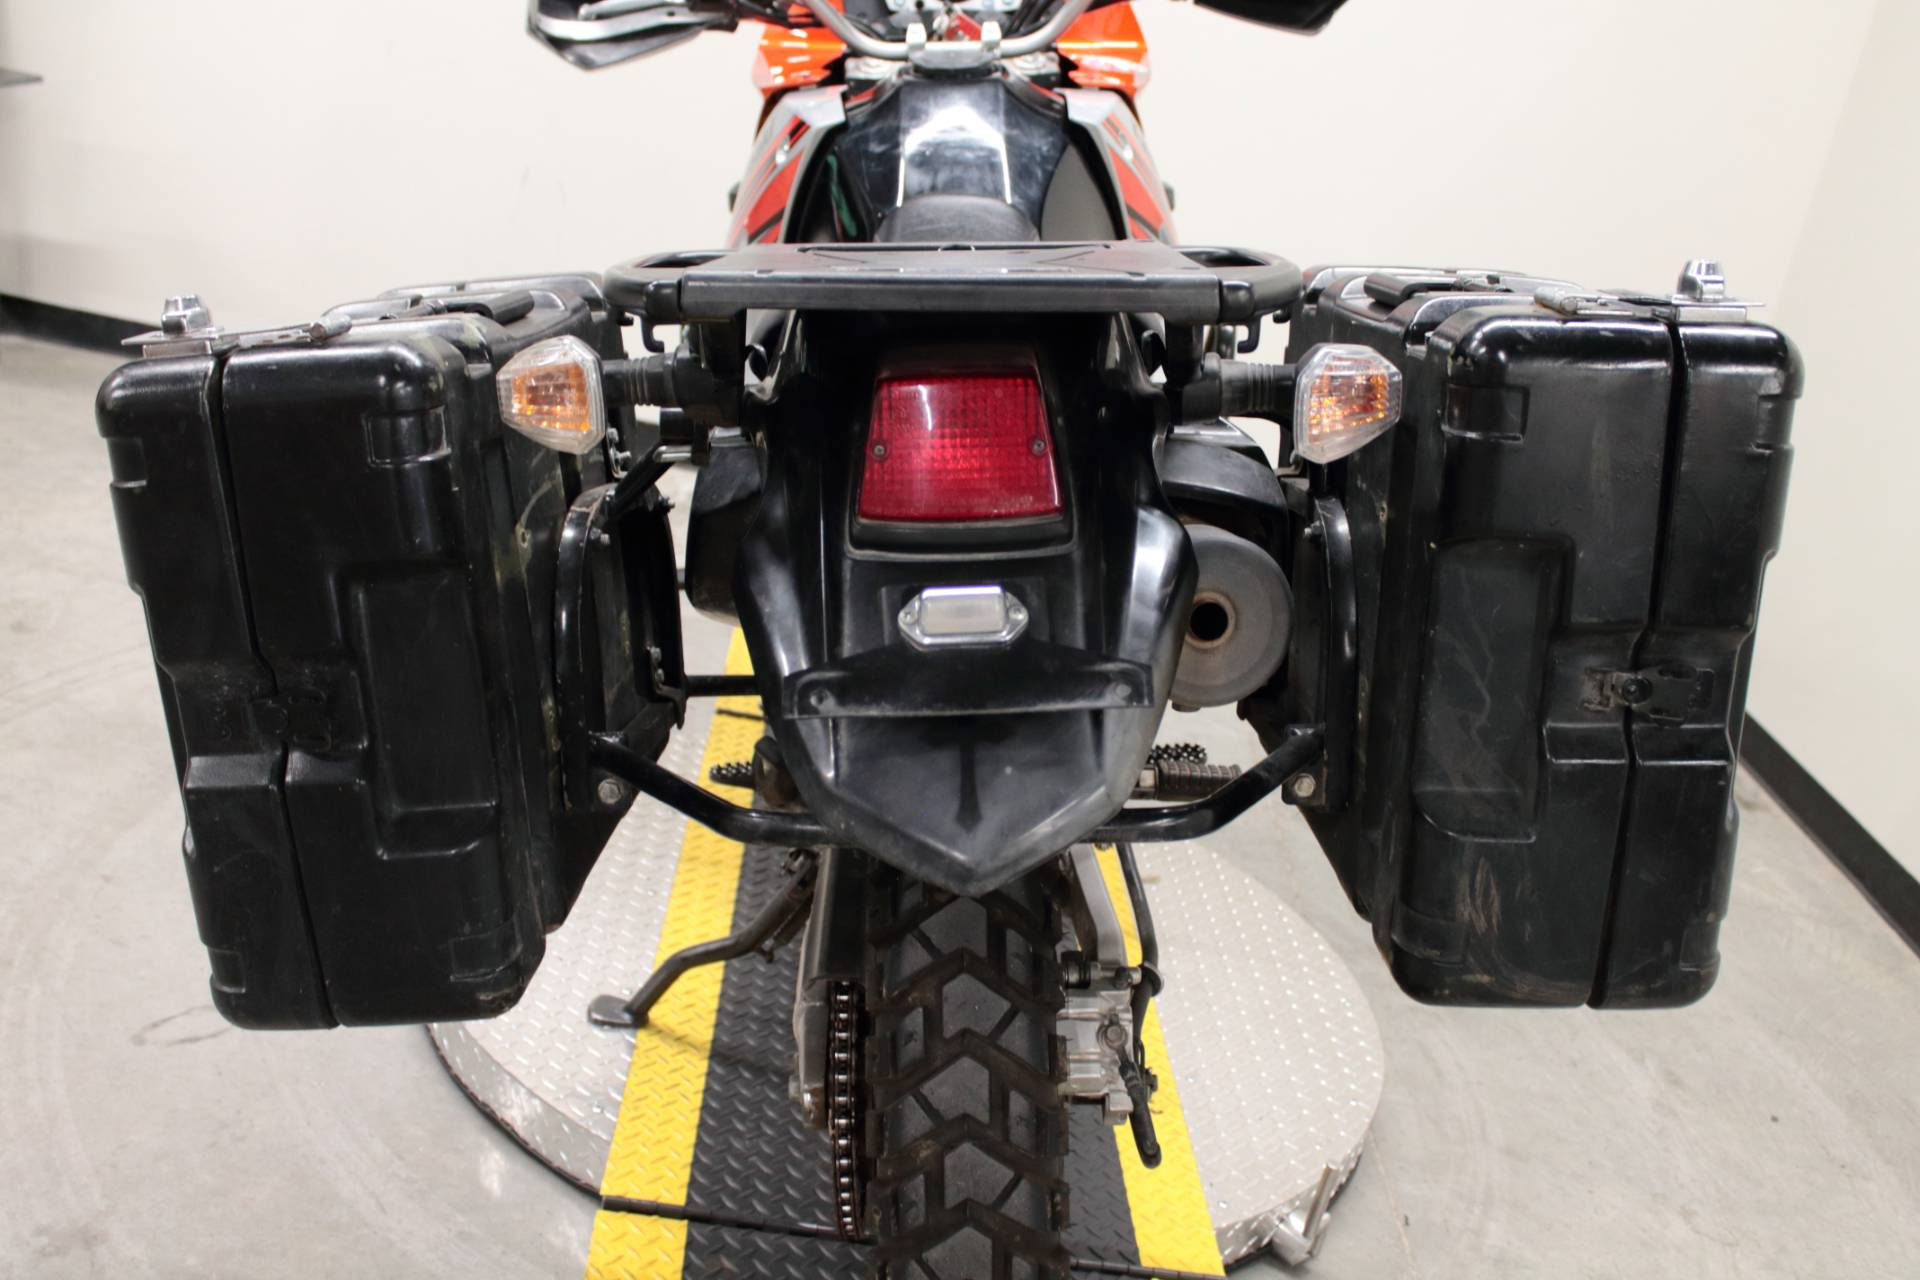 2012 Kawasaki KLR™ 650 in Fort Worth, Texas - Photo 18